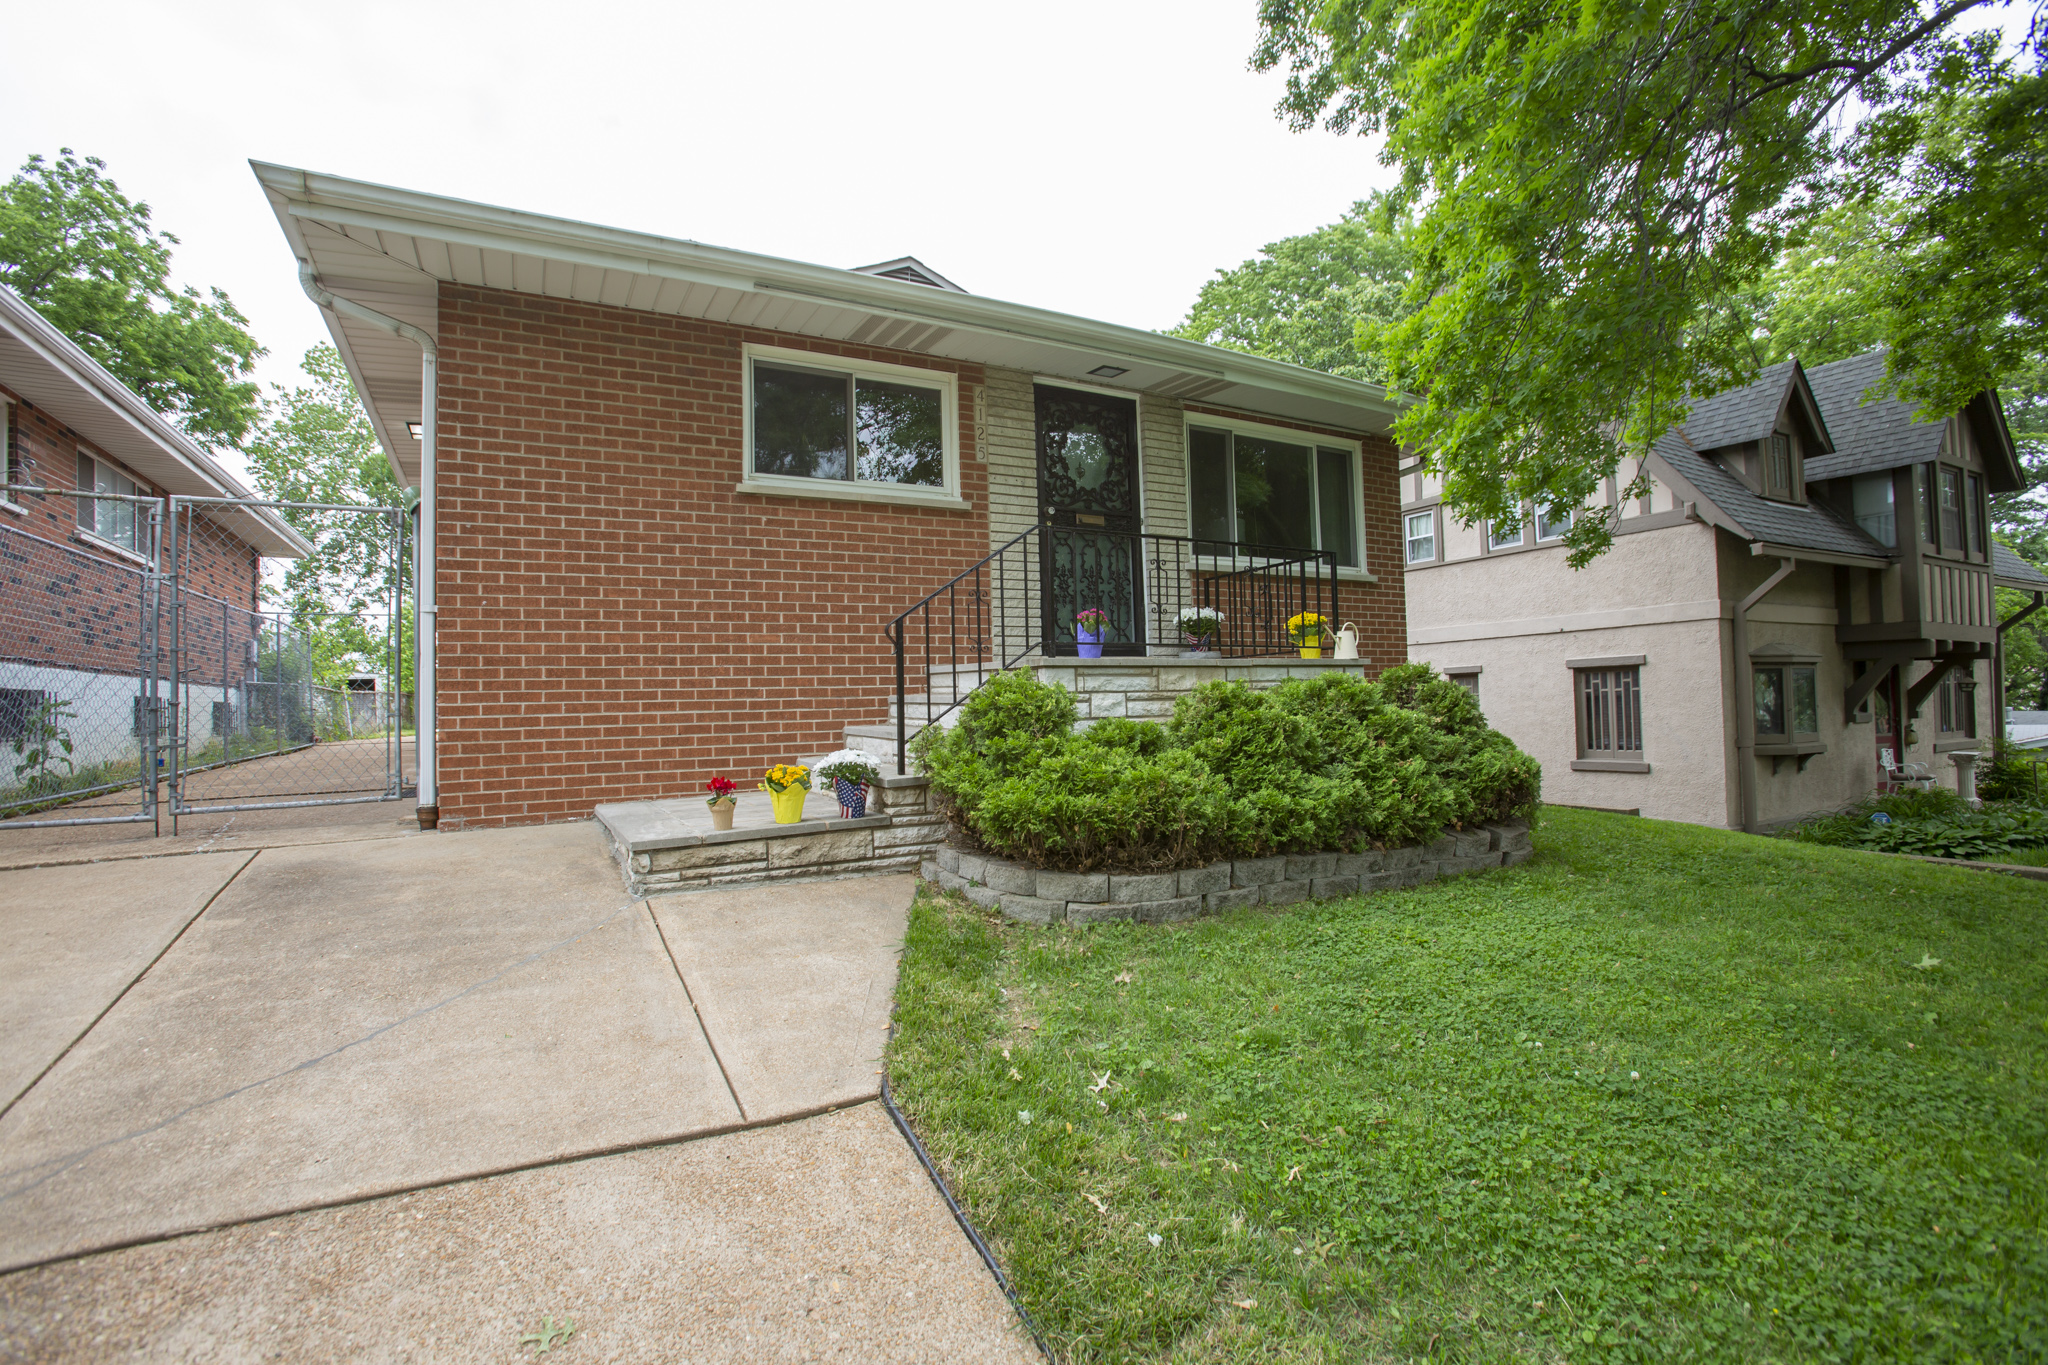 4125 Fairview Ave St Louis MO 63116 – Tower Grove South